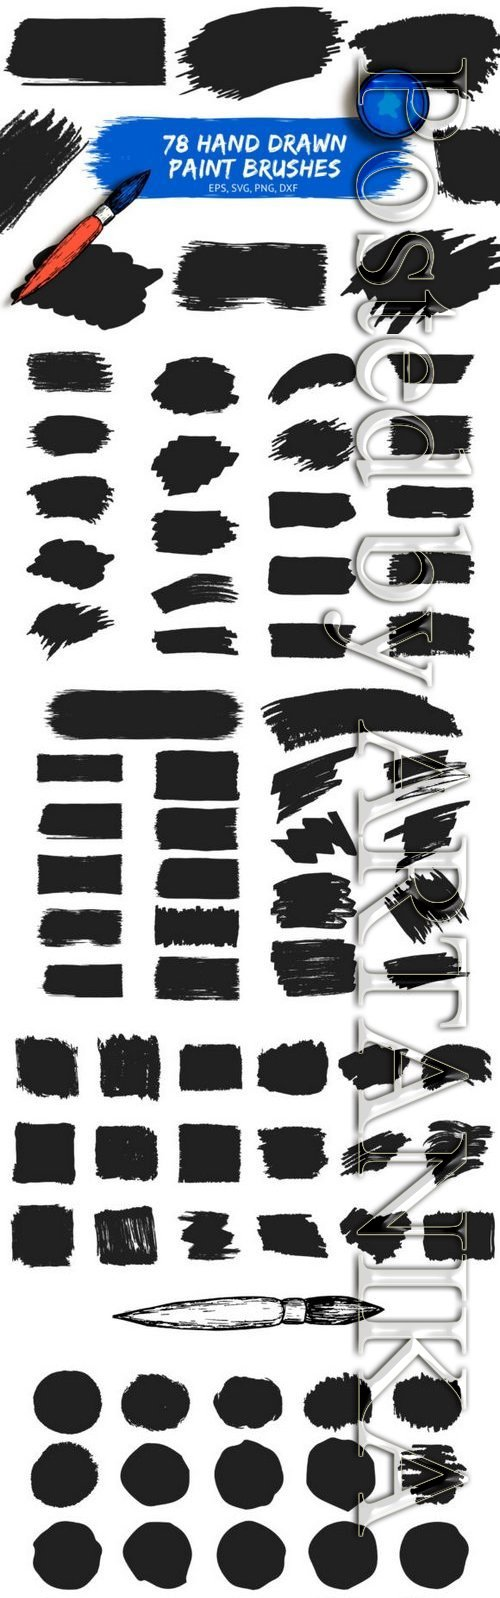 78 Hand drawn Paint Brushes